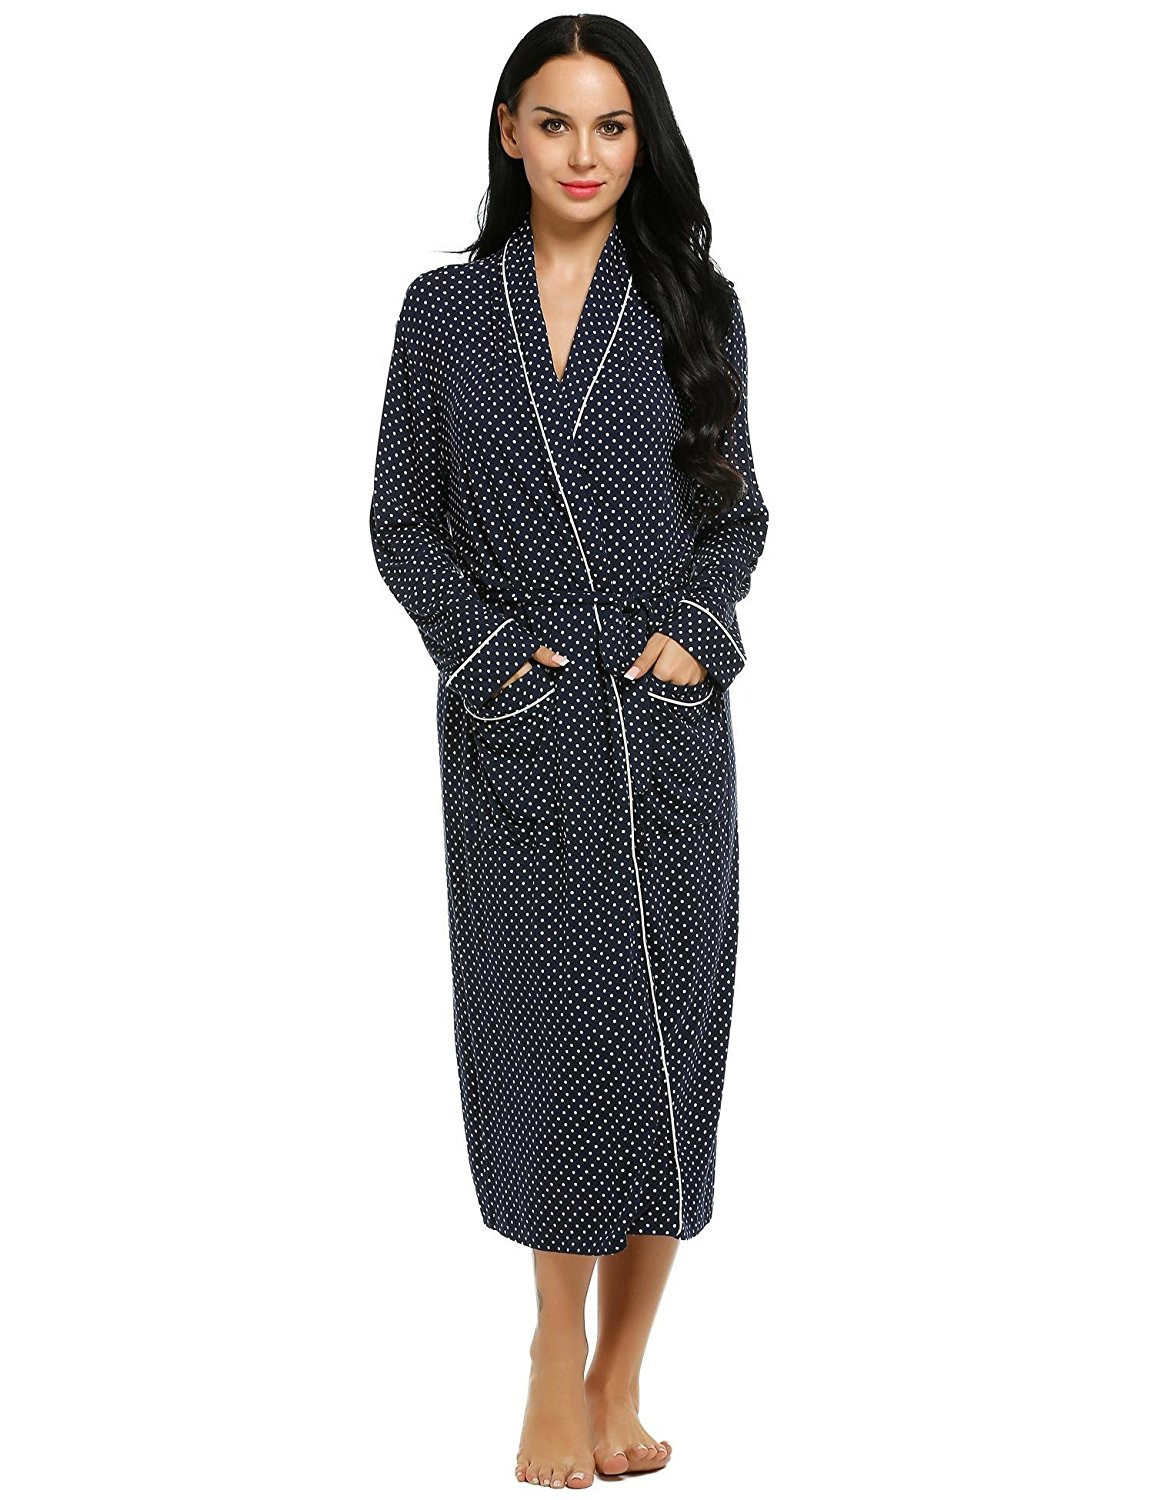 8f099a7f03 Get Quotations · L amore Women s towelling Bathrobe Comfort Sleepwear  Classic Luxury Comfy Robes